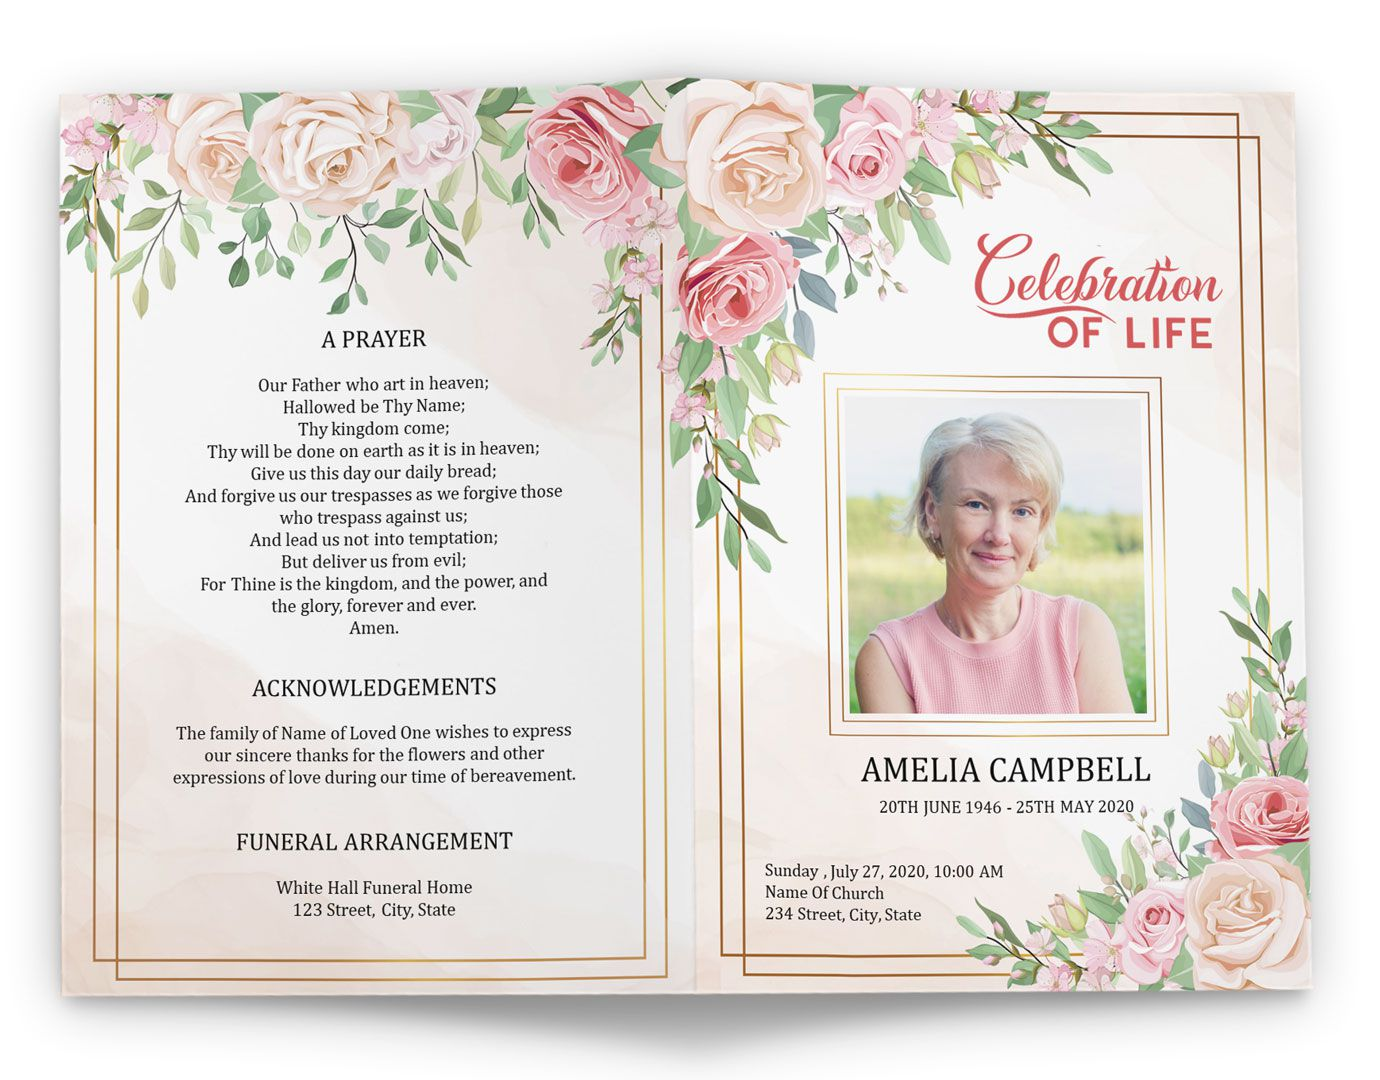 005 Magnificent Free Printable Celebration Of Life Program Template Highest Quality Full